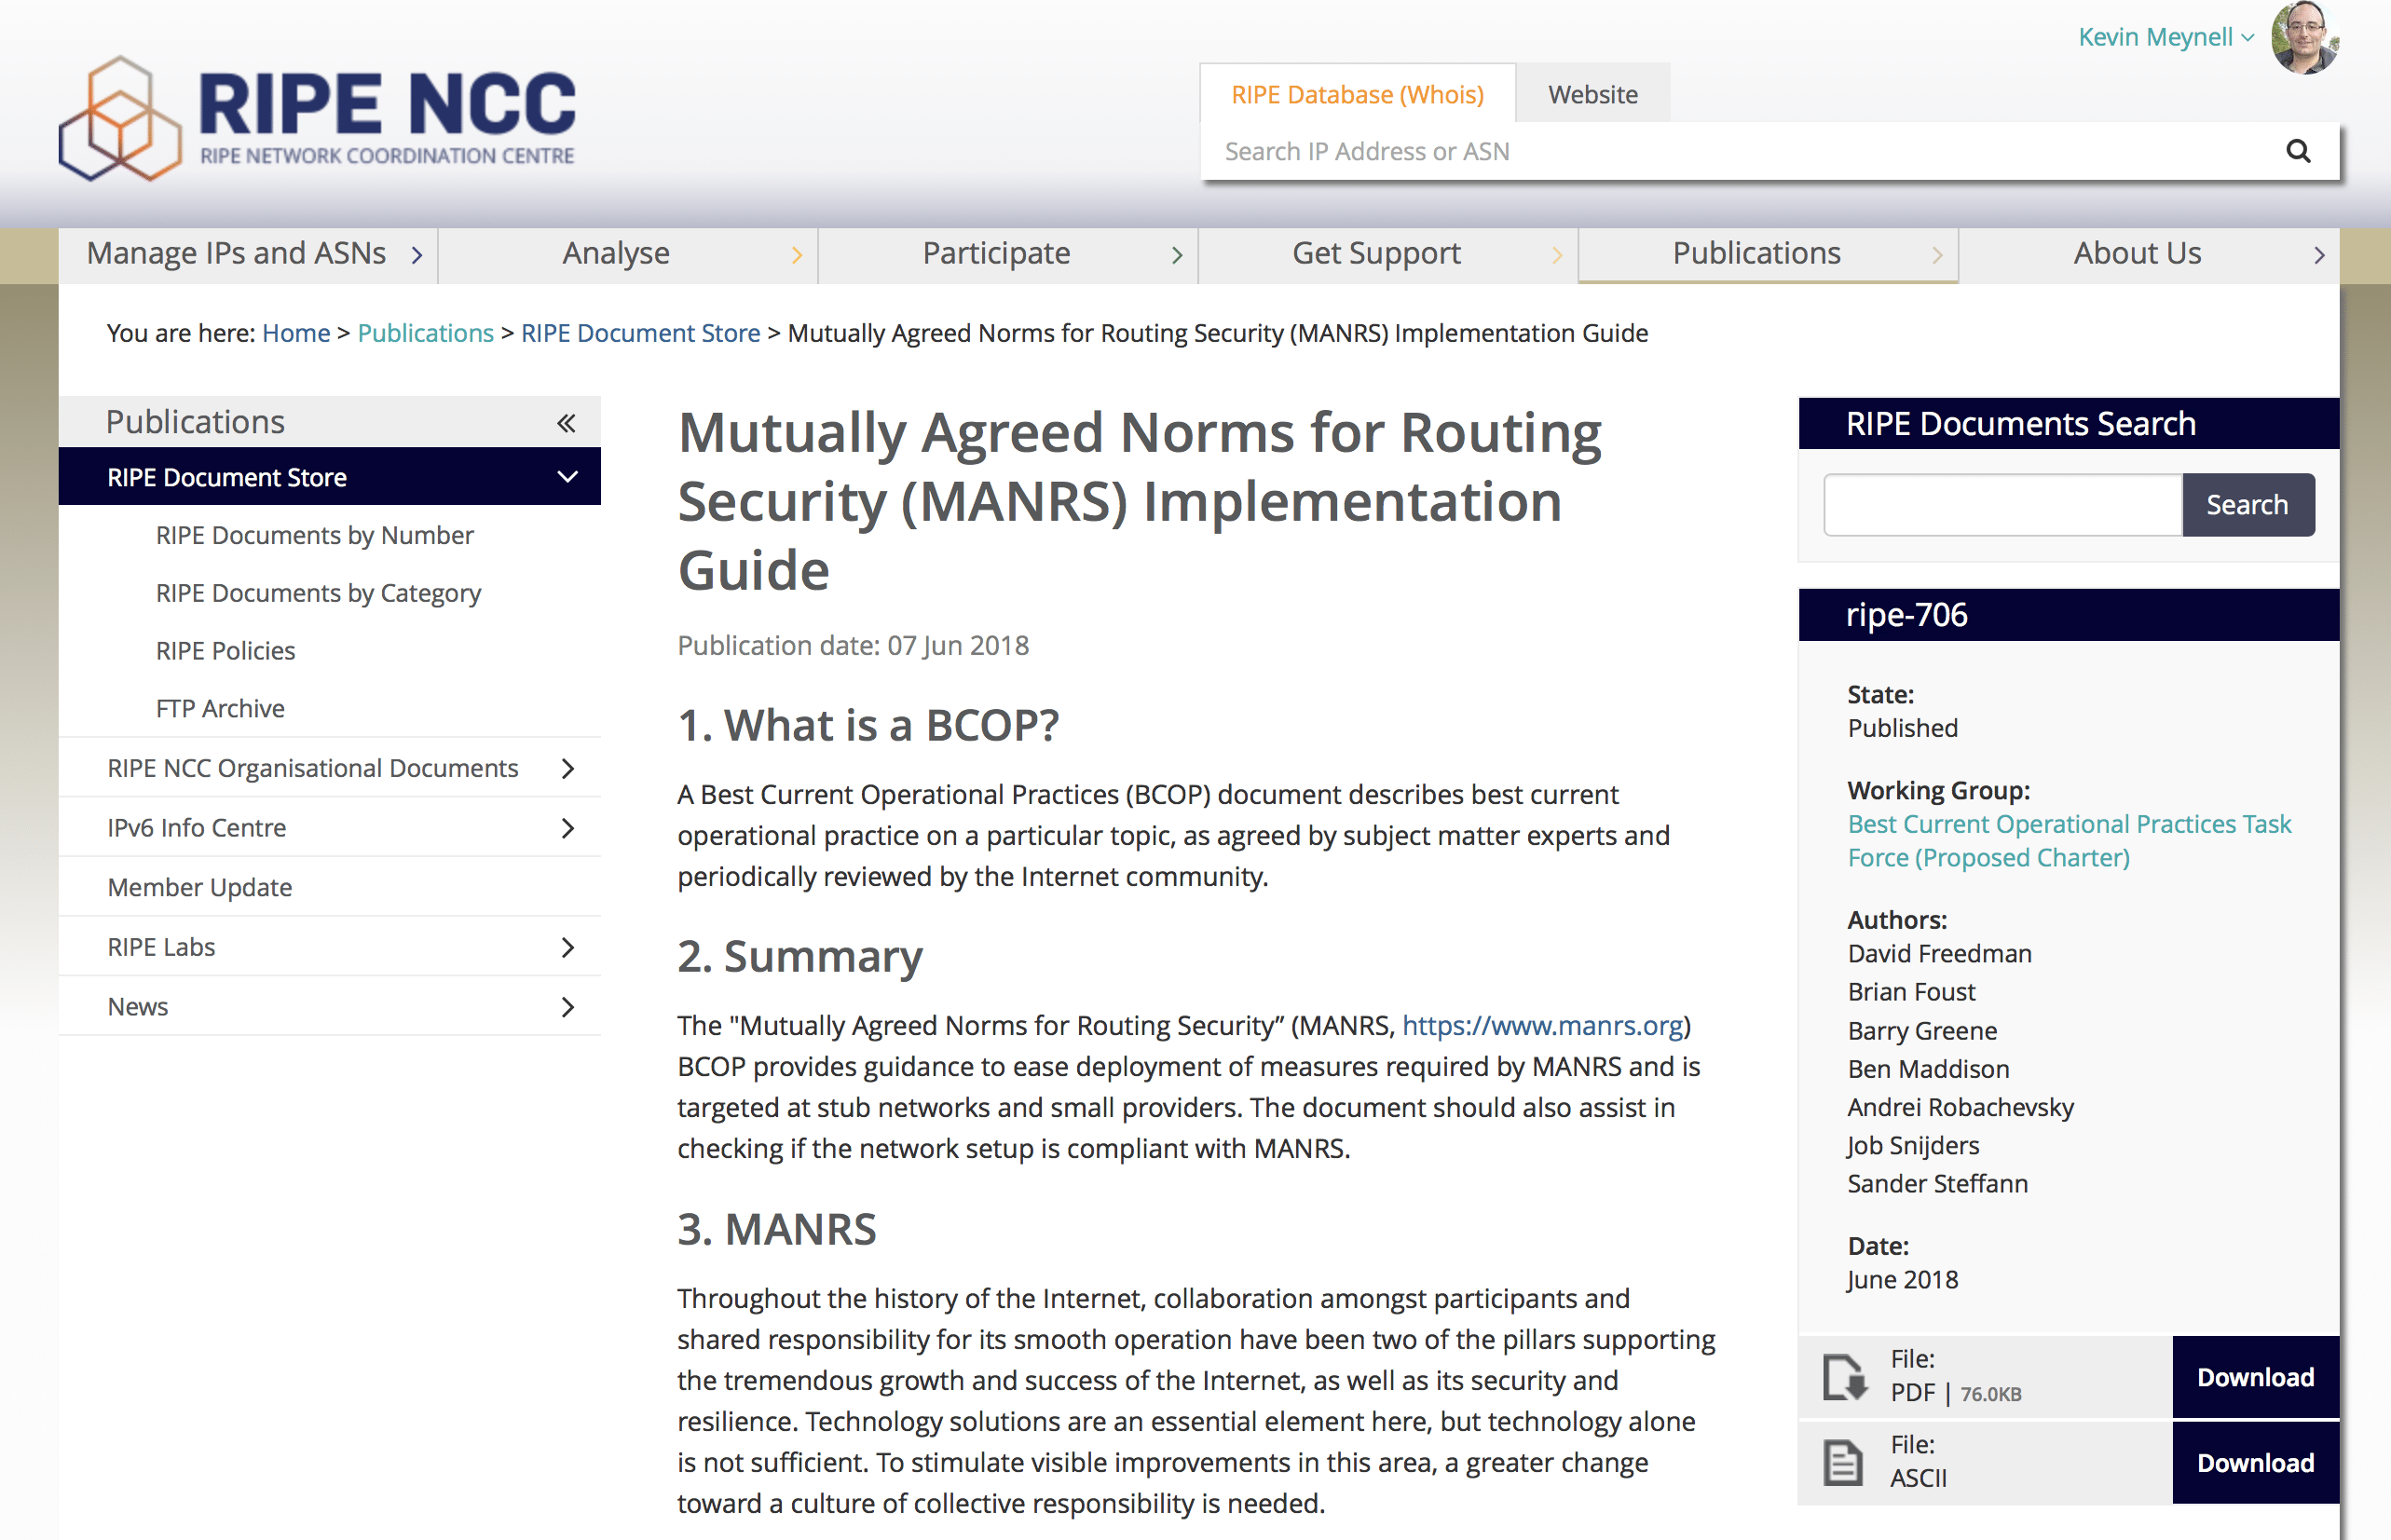 MANRS BCOP published as RIPE document Thumbnail